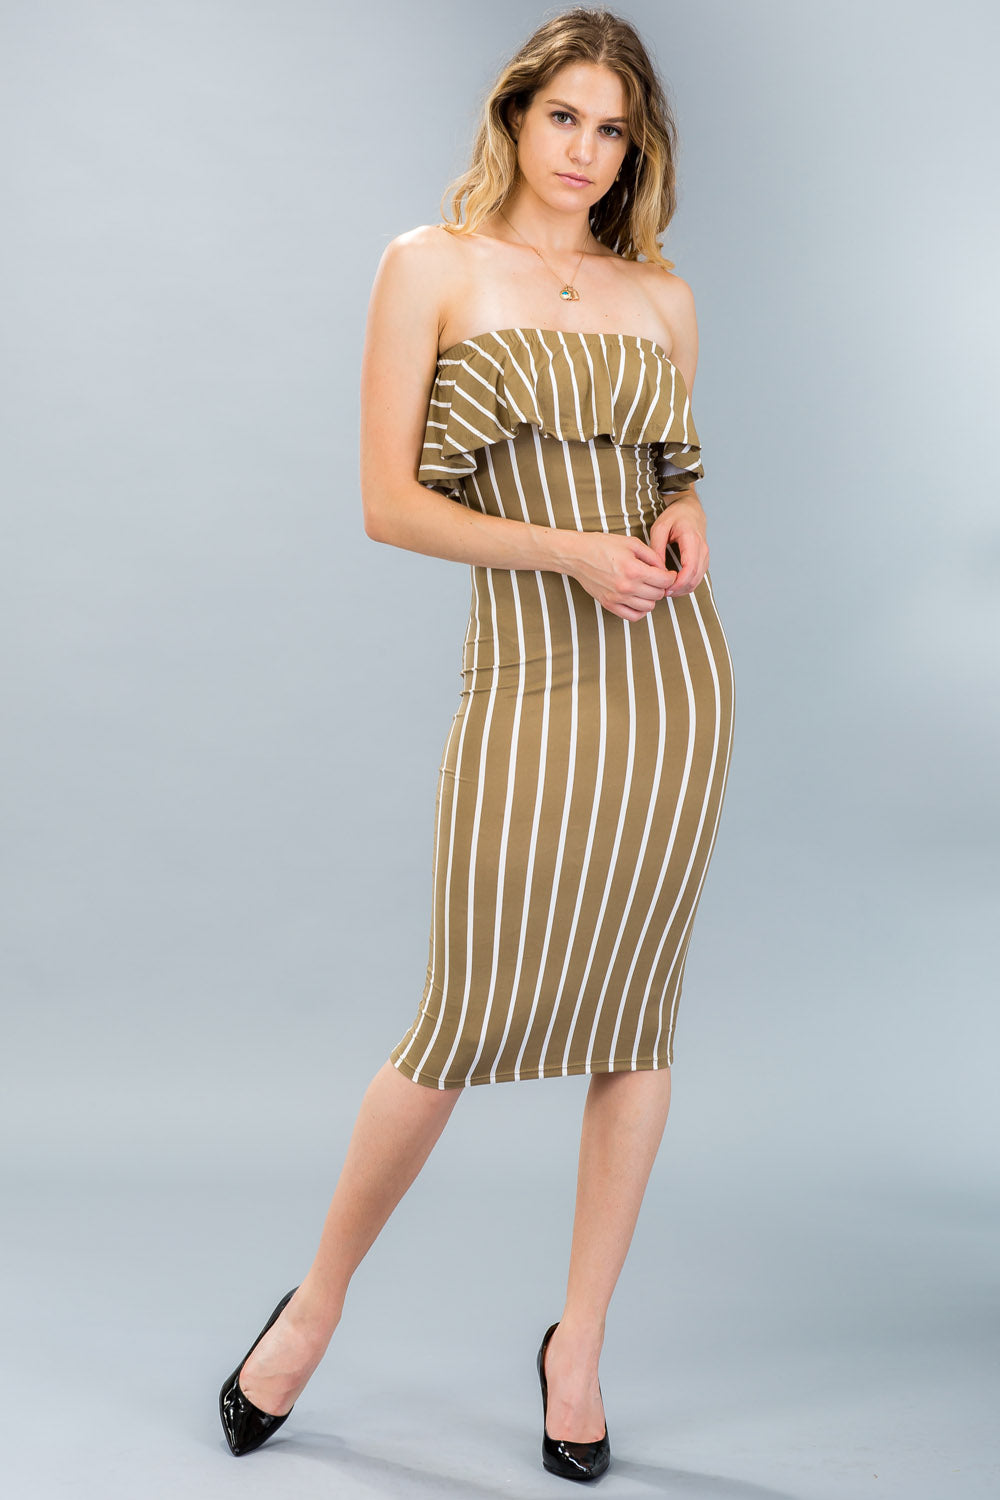 Ruffle Tube Dress - BD2060 - Capella Apparel